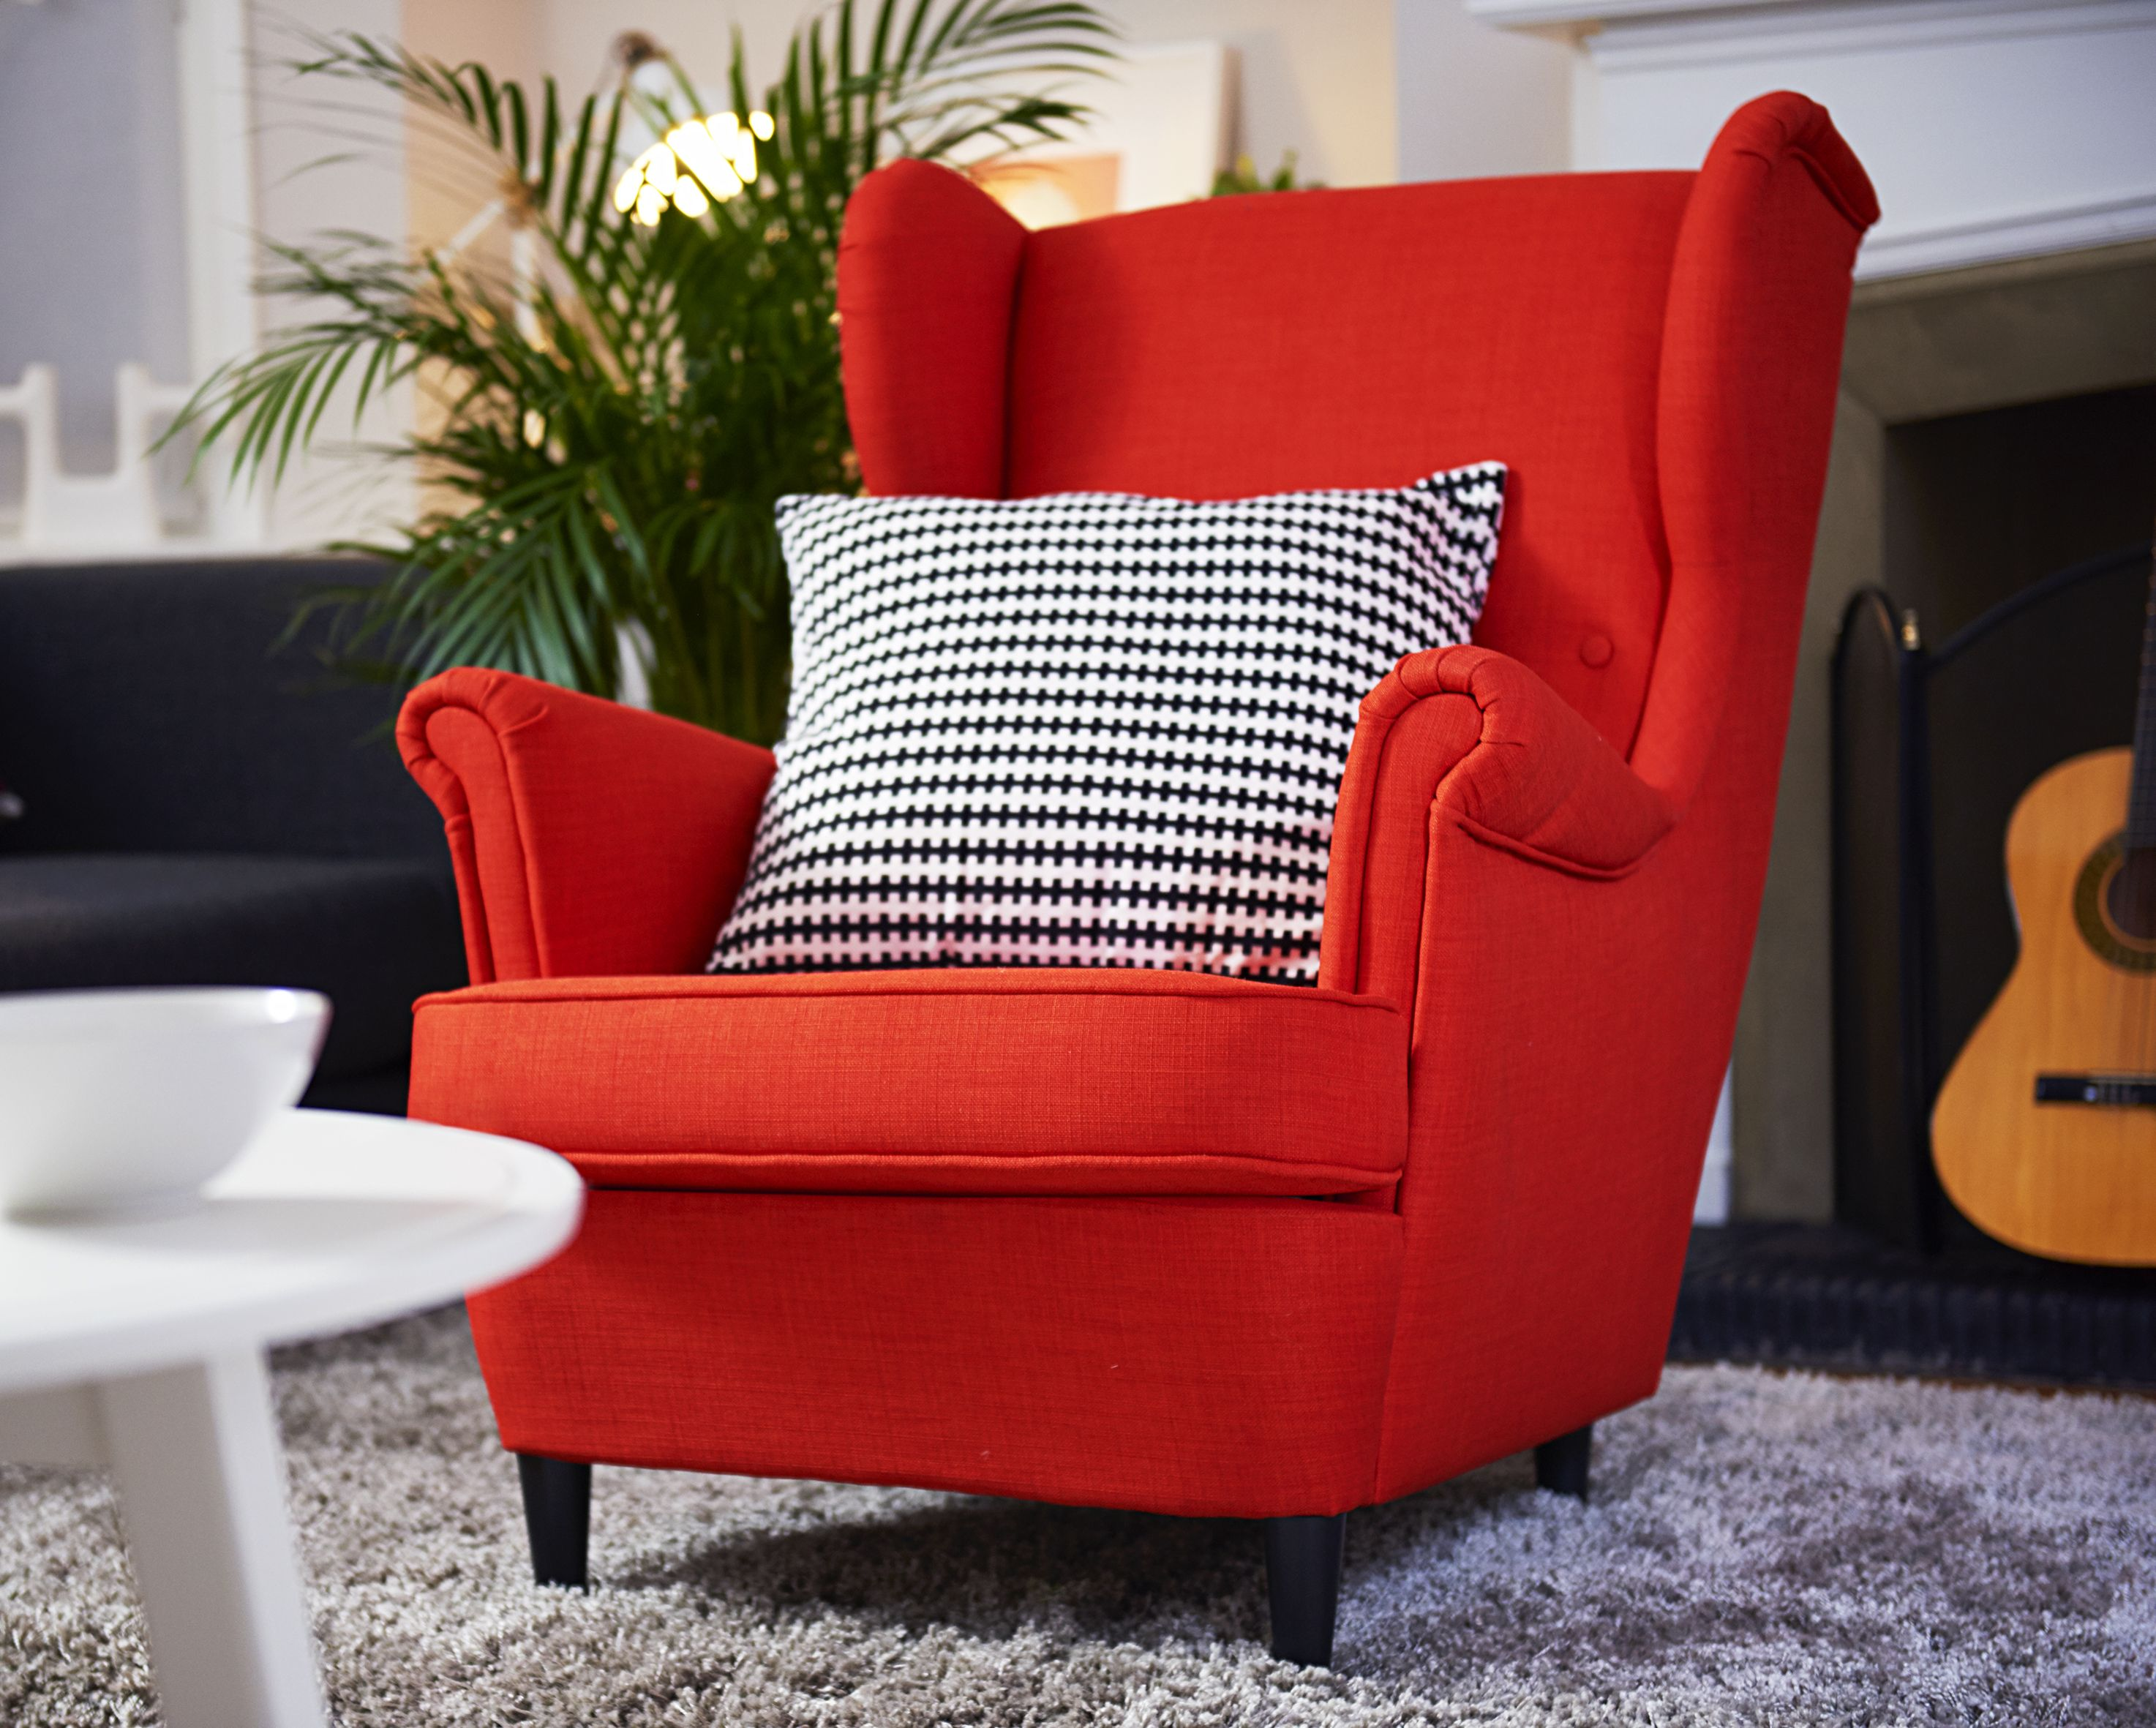 Rooms: We All Have Our Favourite Chair. The One We Can Sink Into